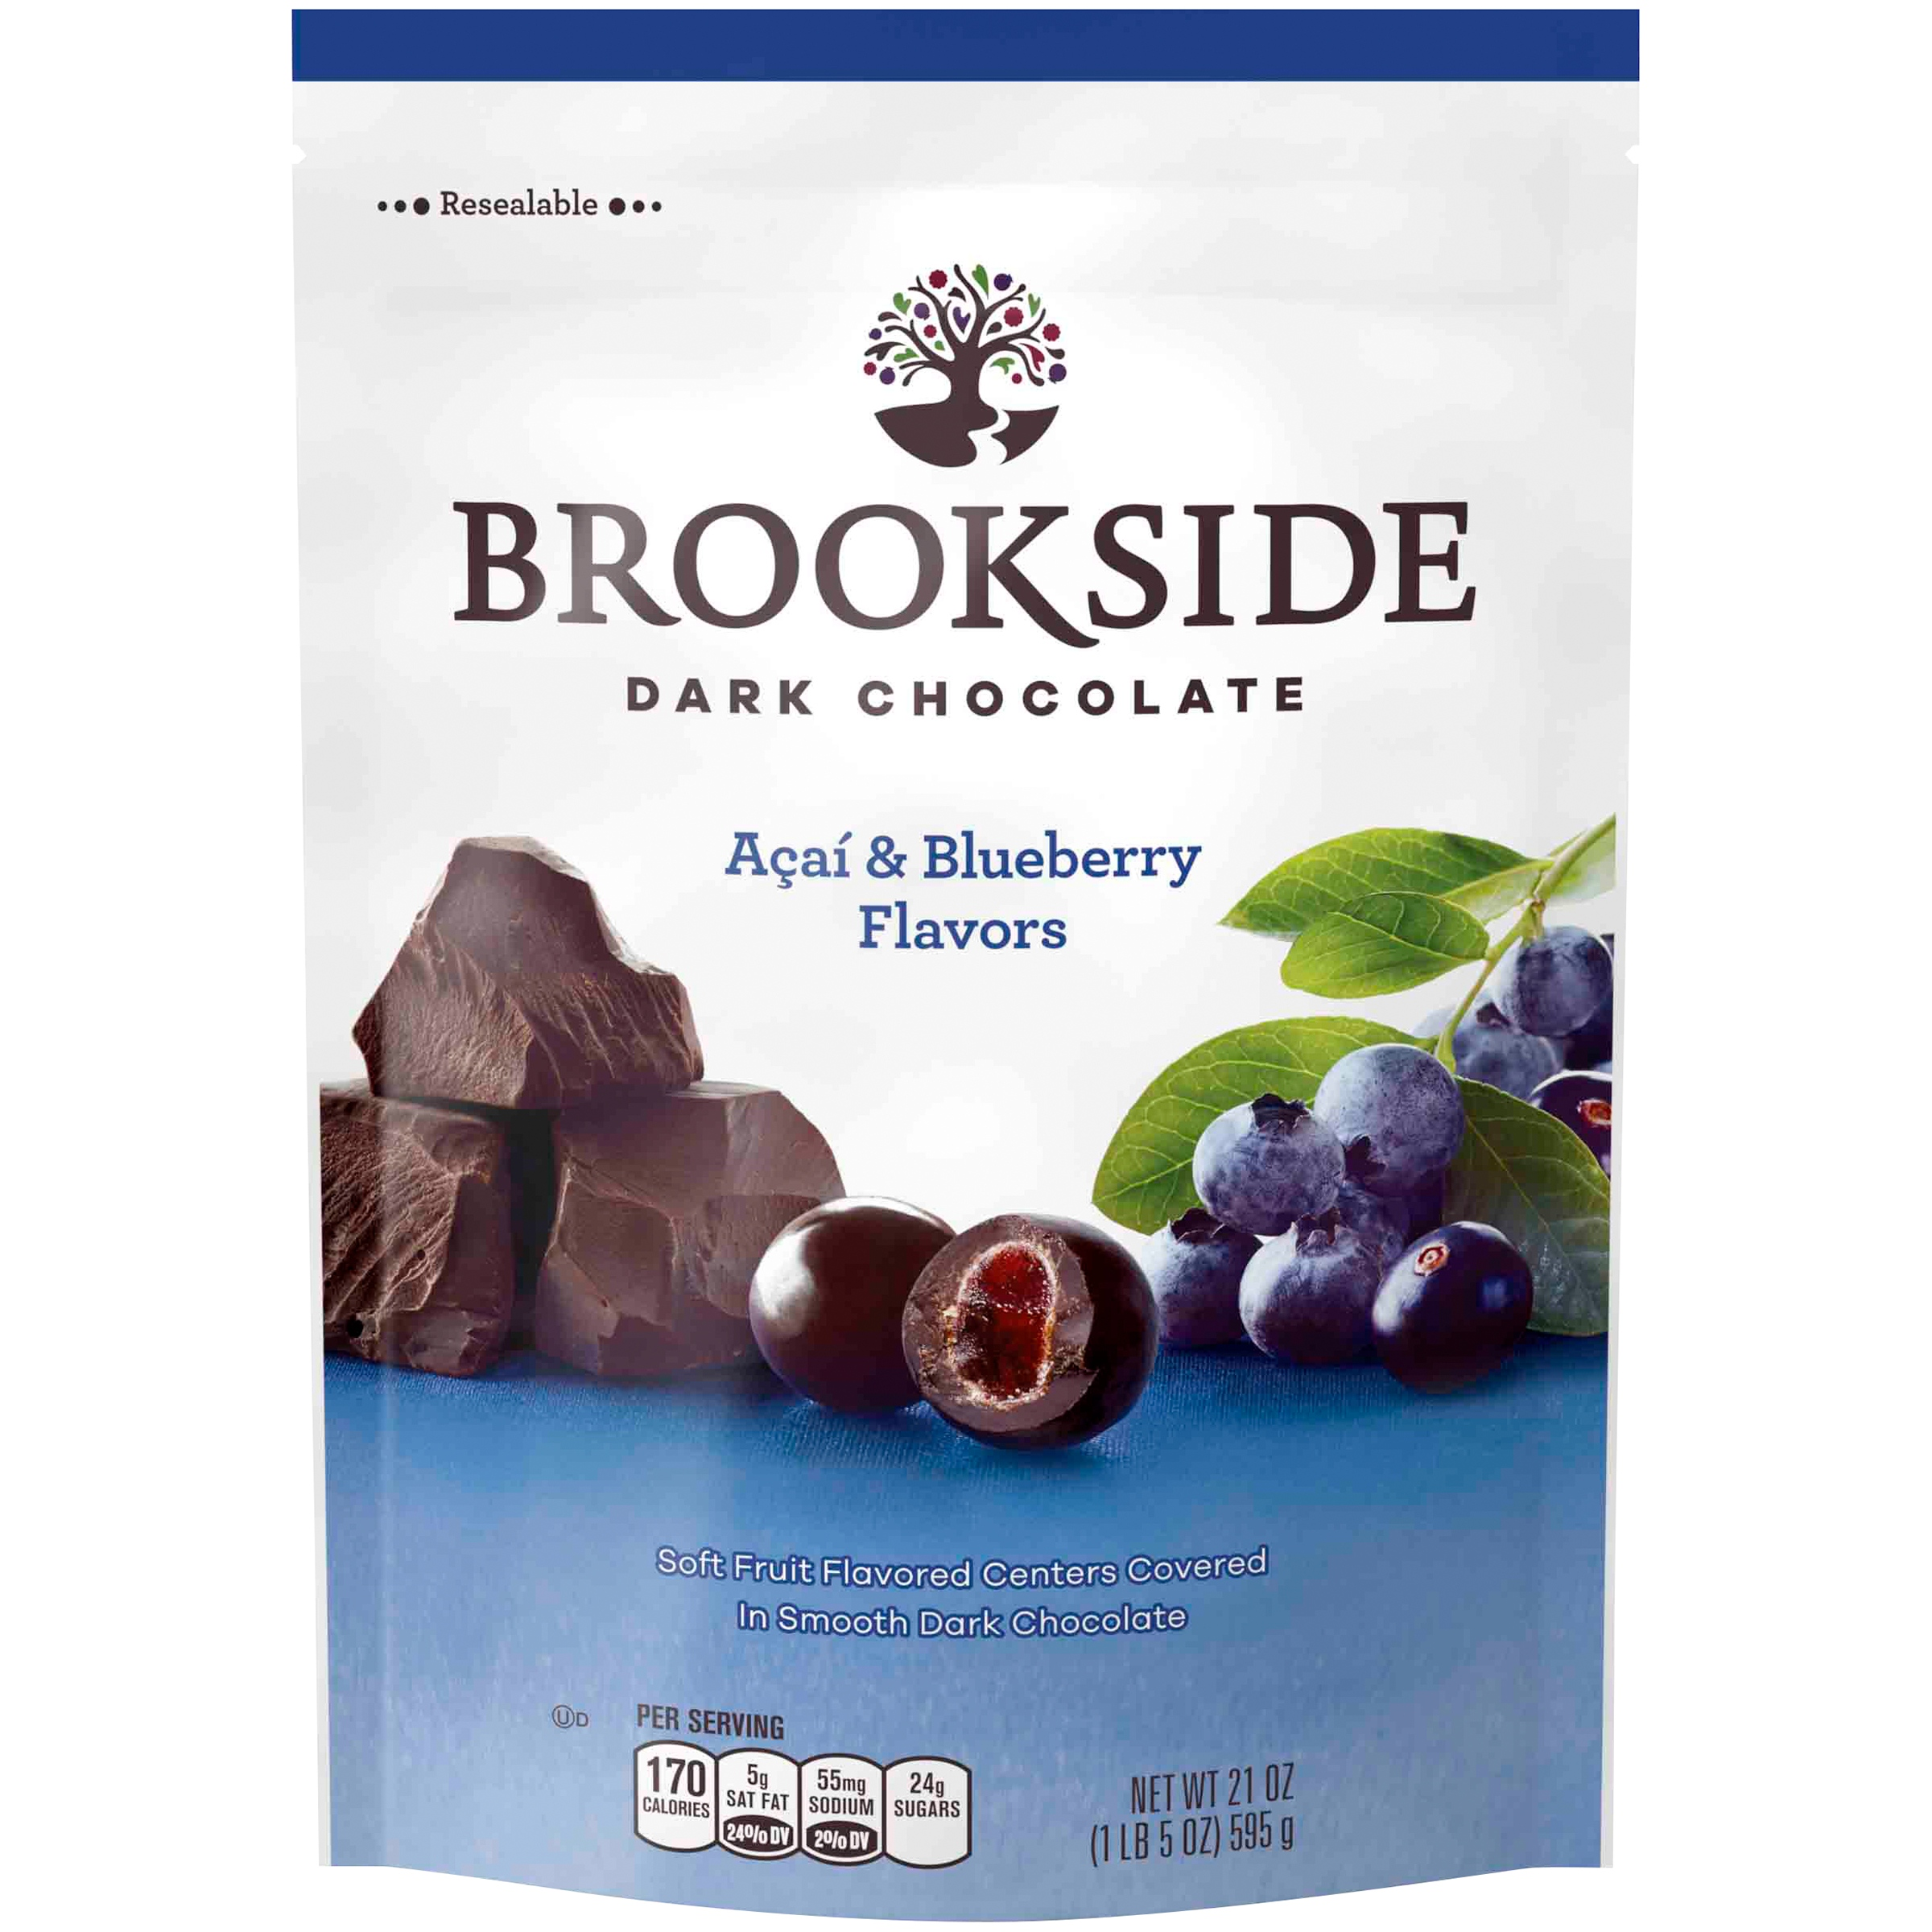 Brookside, Acai & Blueberry Dark Chocolate Candy, 21 Oz